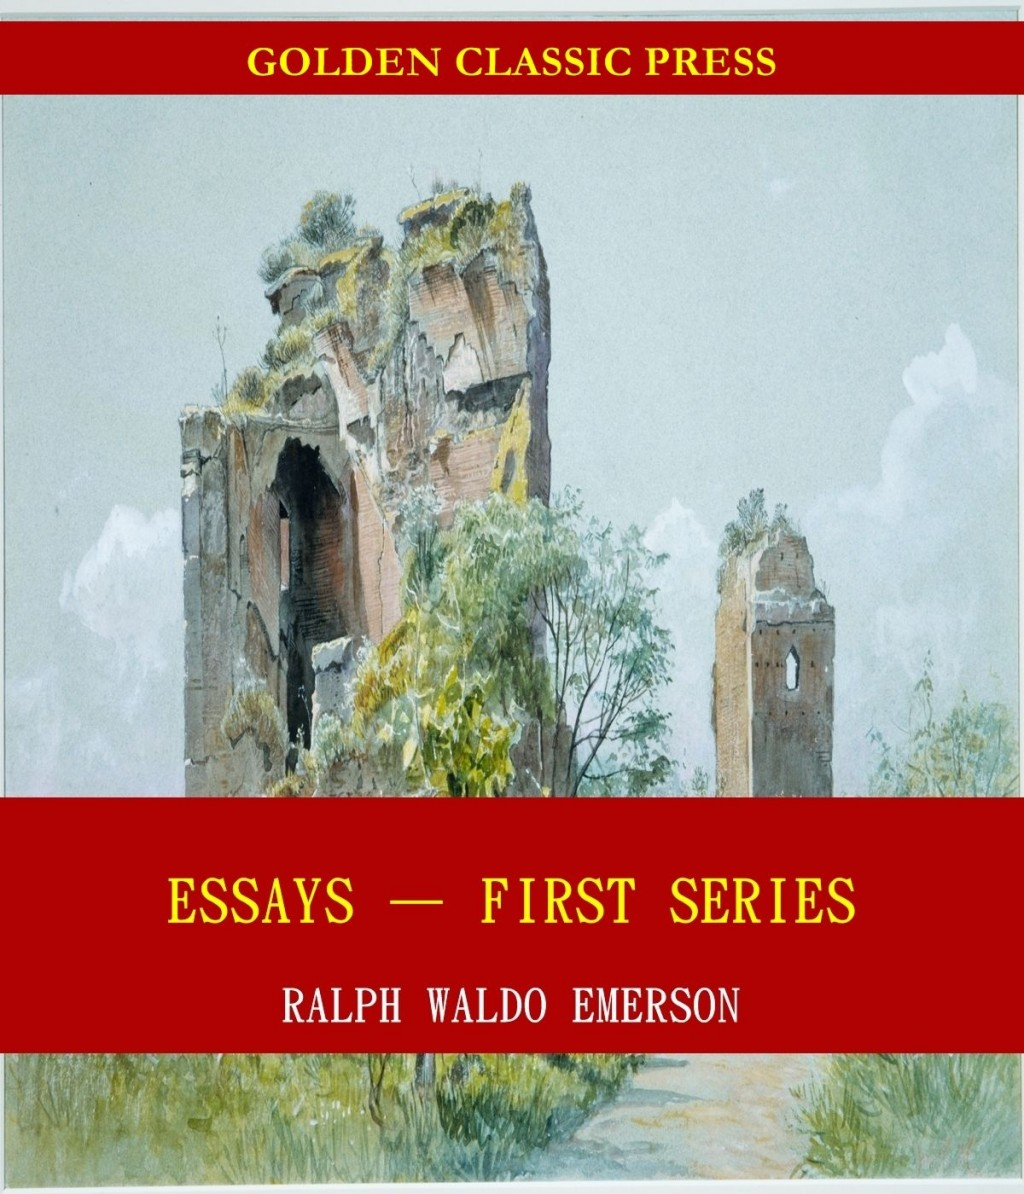 008 Essays First Series Essay Example Stunning Emerson Pdf Shelburne Publisher Large